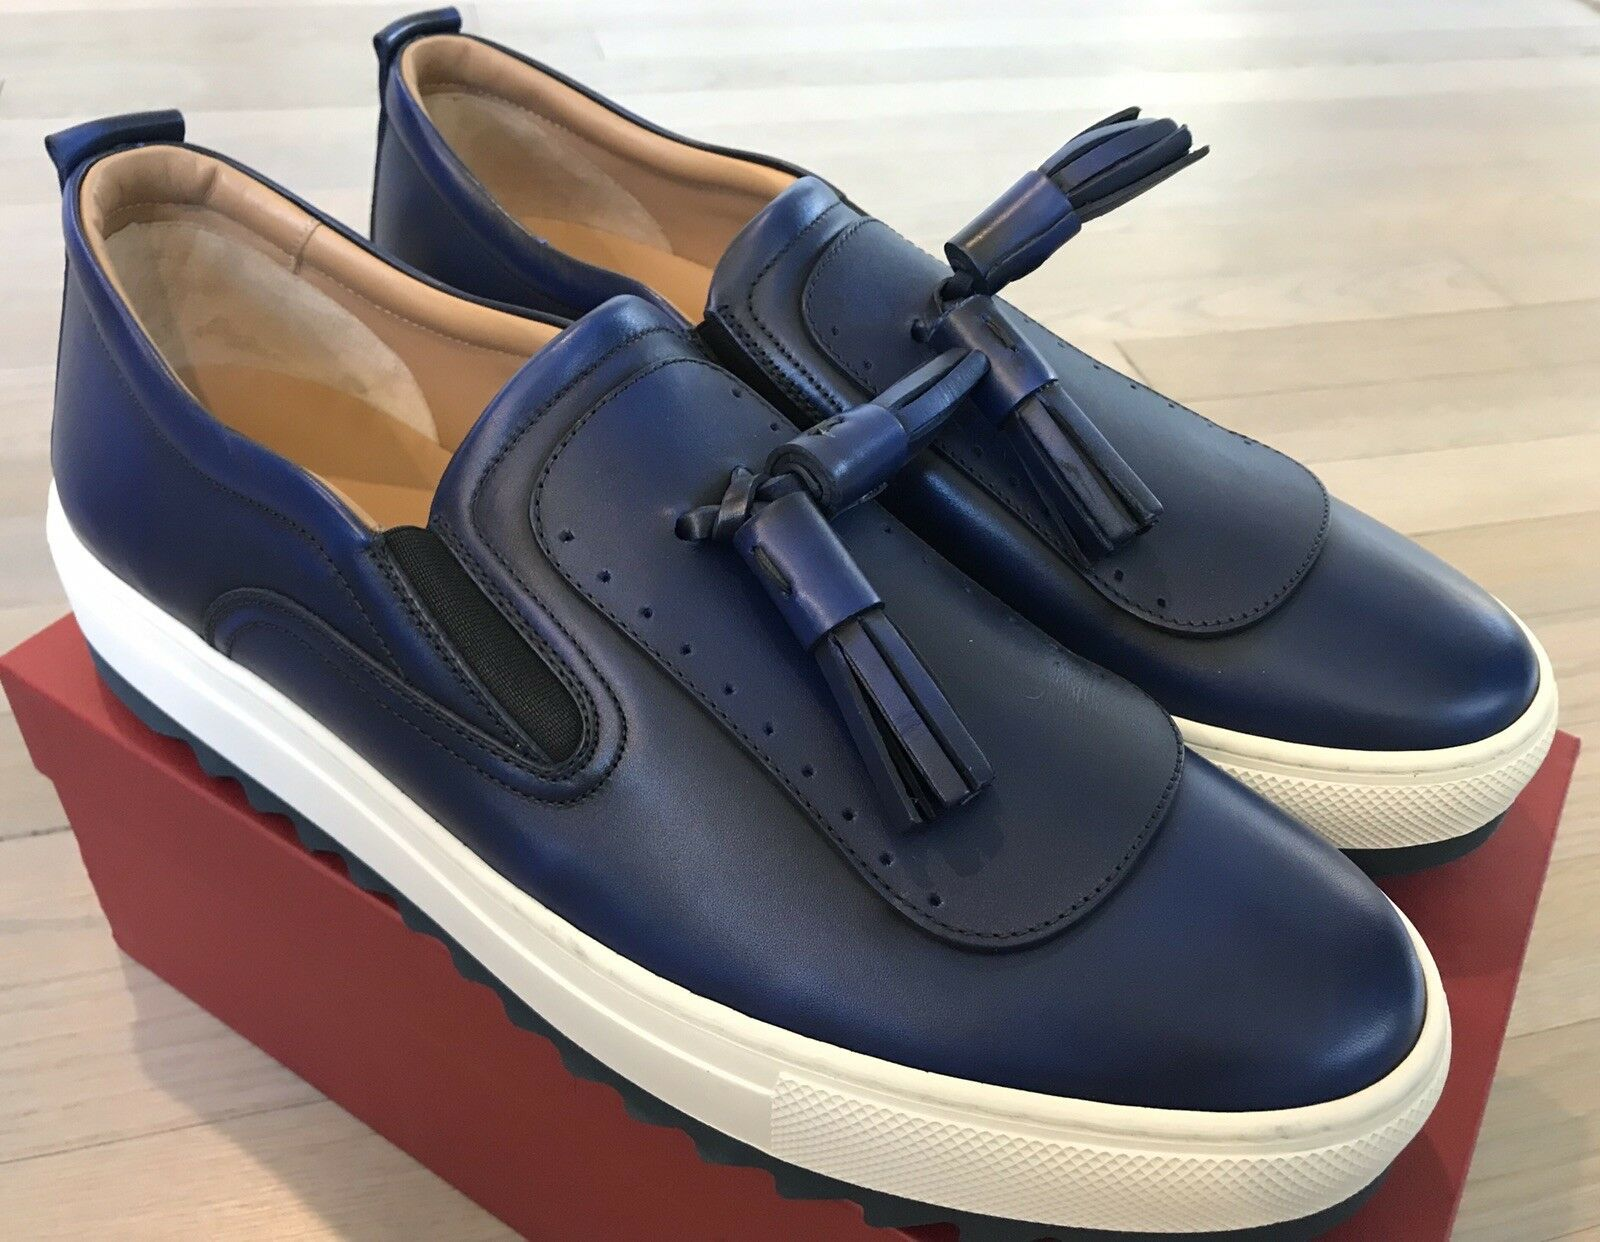 600  Salvatore Ferragamo Lucca Royal bluee Slip Ons Size US 10.5 Made in